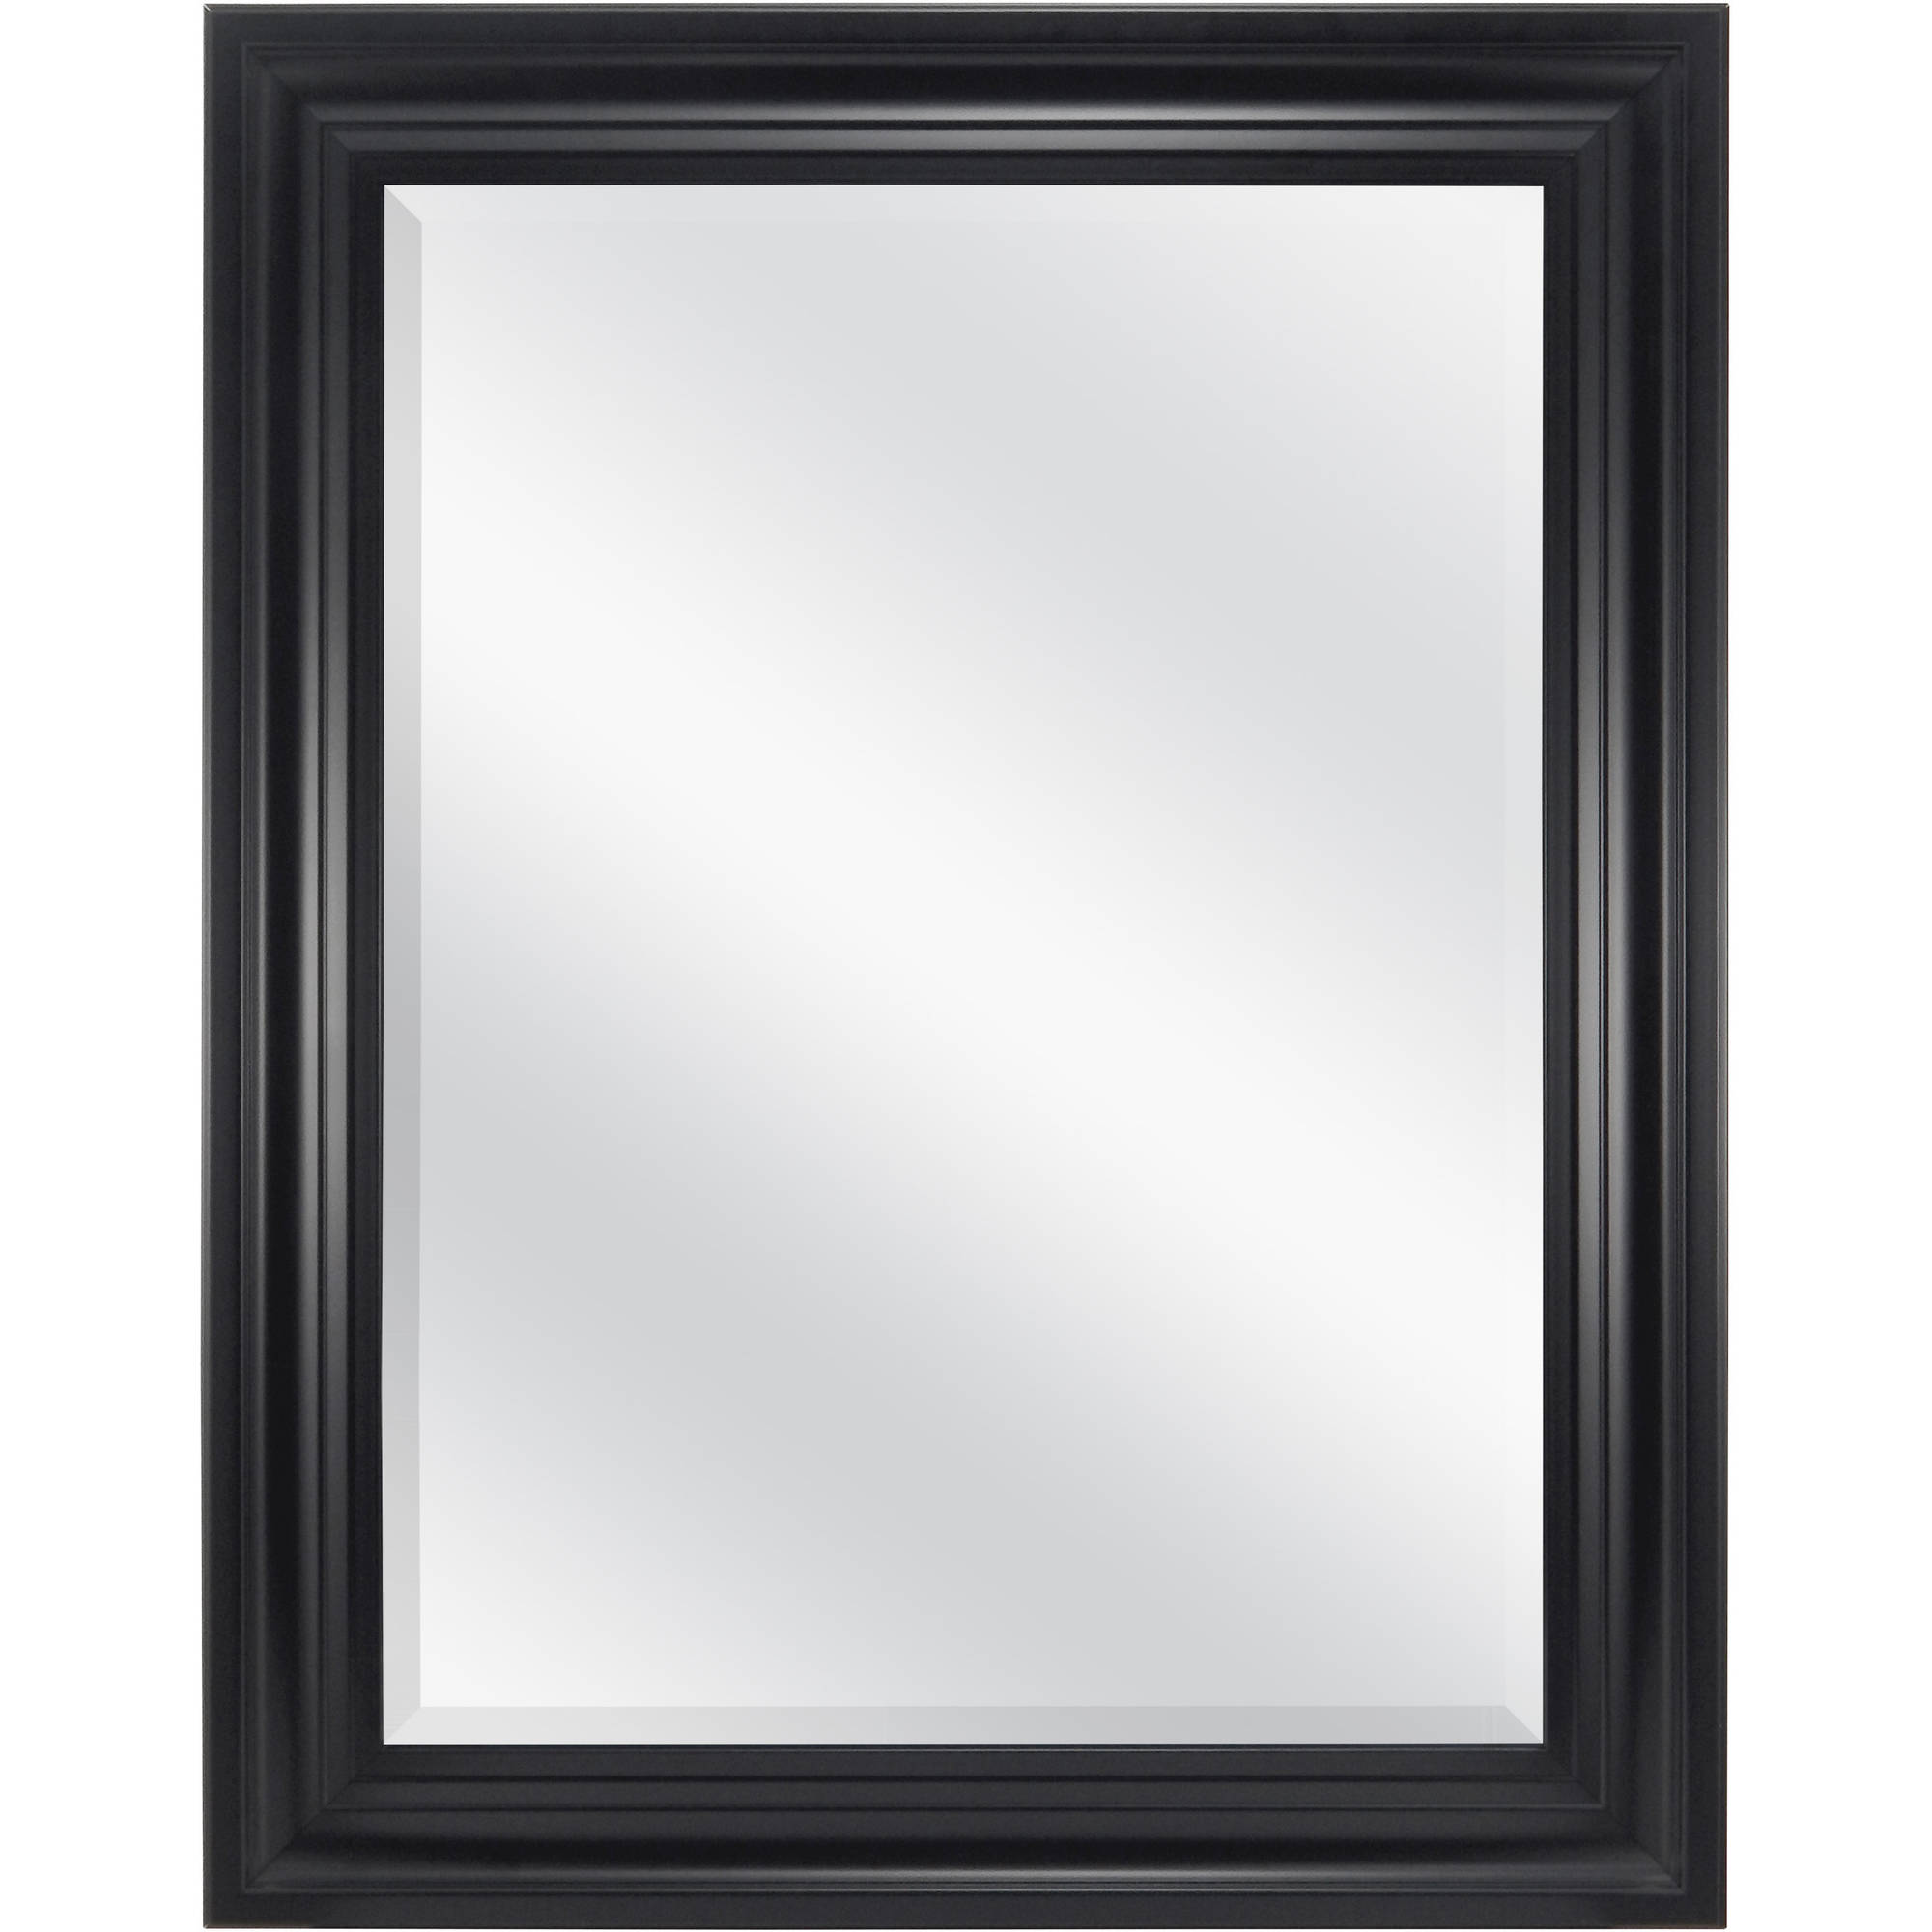 """Mainstays Beveled Wall Mirror, 23"""" x 29"""", Available in Multiple Colors"""